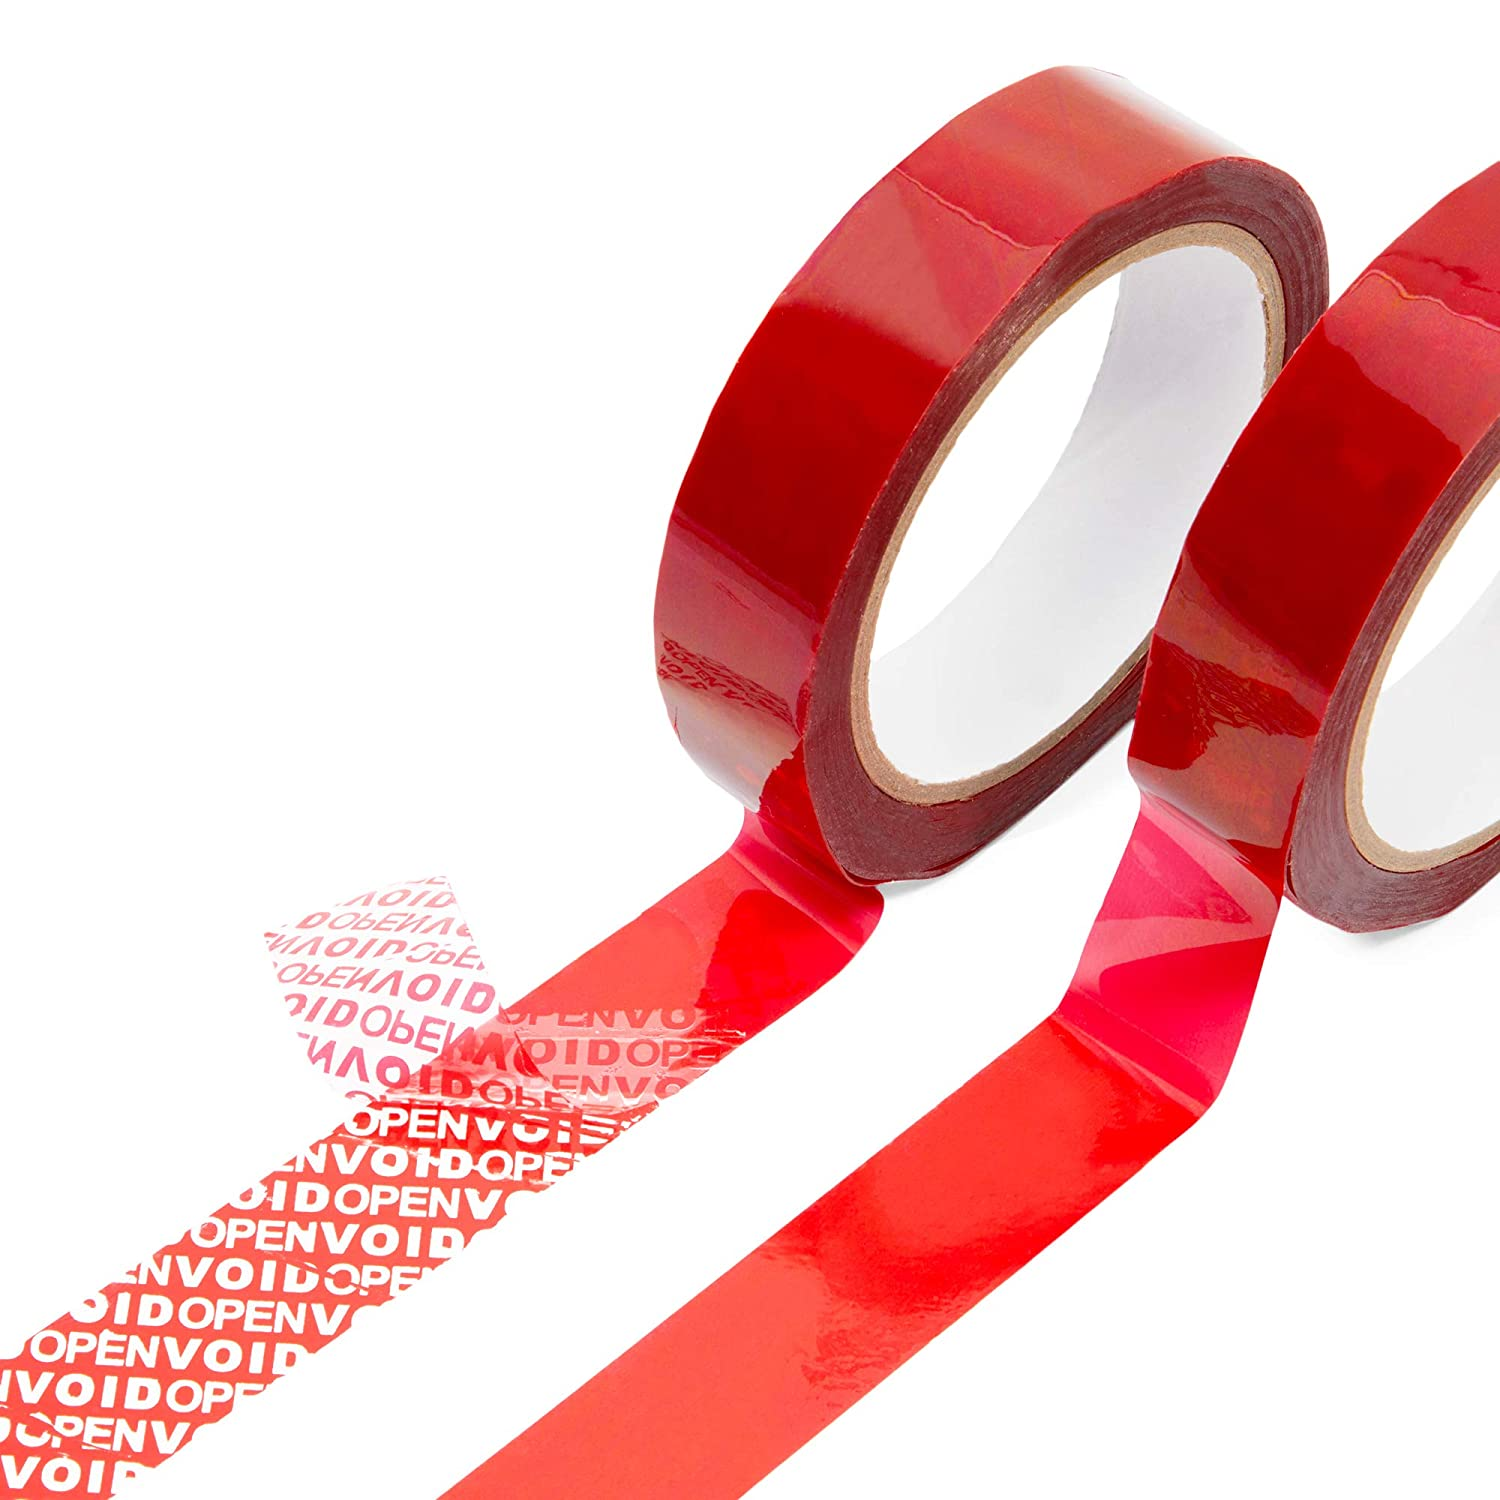 Tamper Evident Tape, Red Security Void Seals (1 Inch x 55 Yards, 2 Rolls)